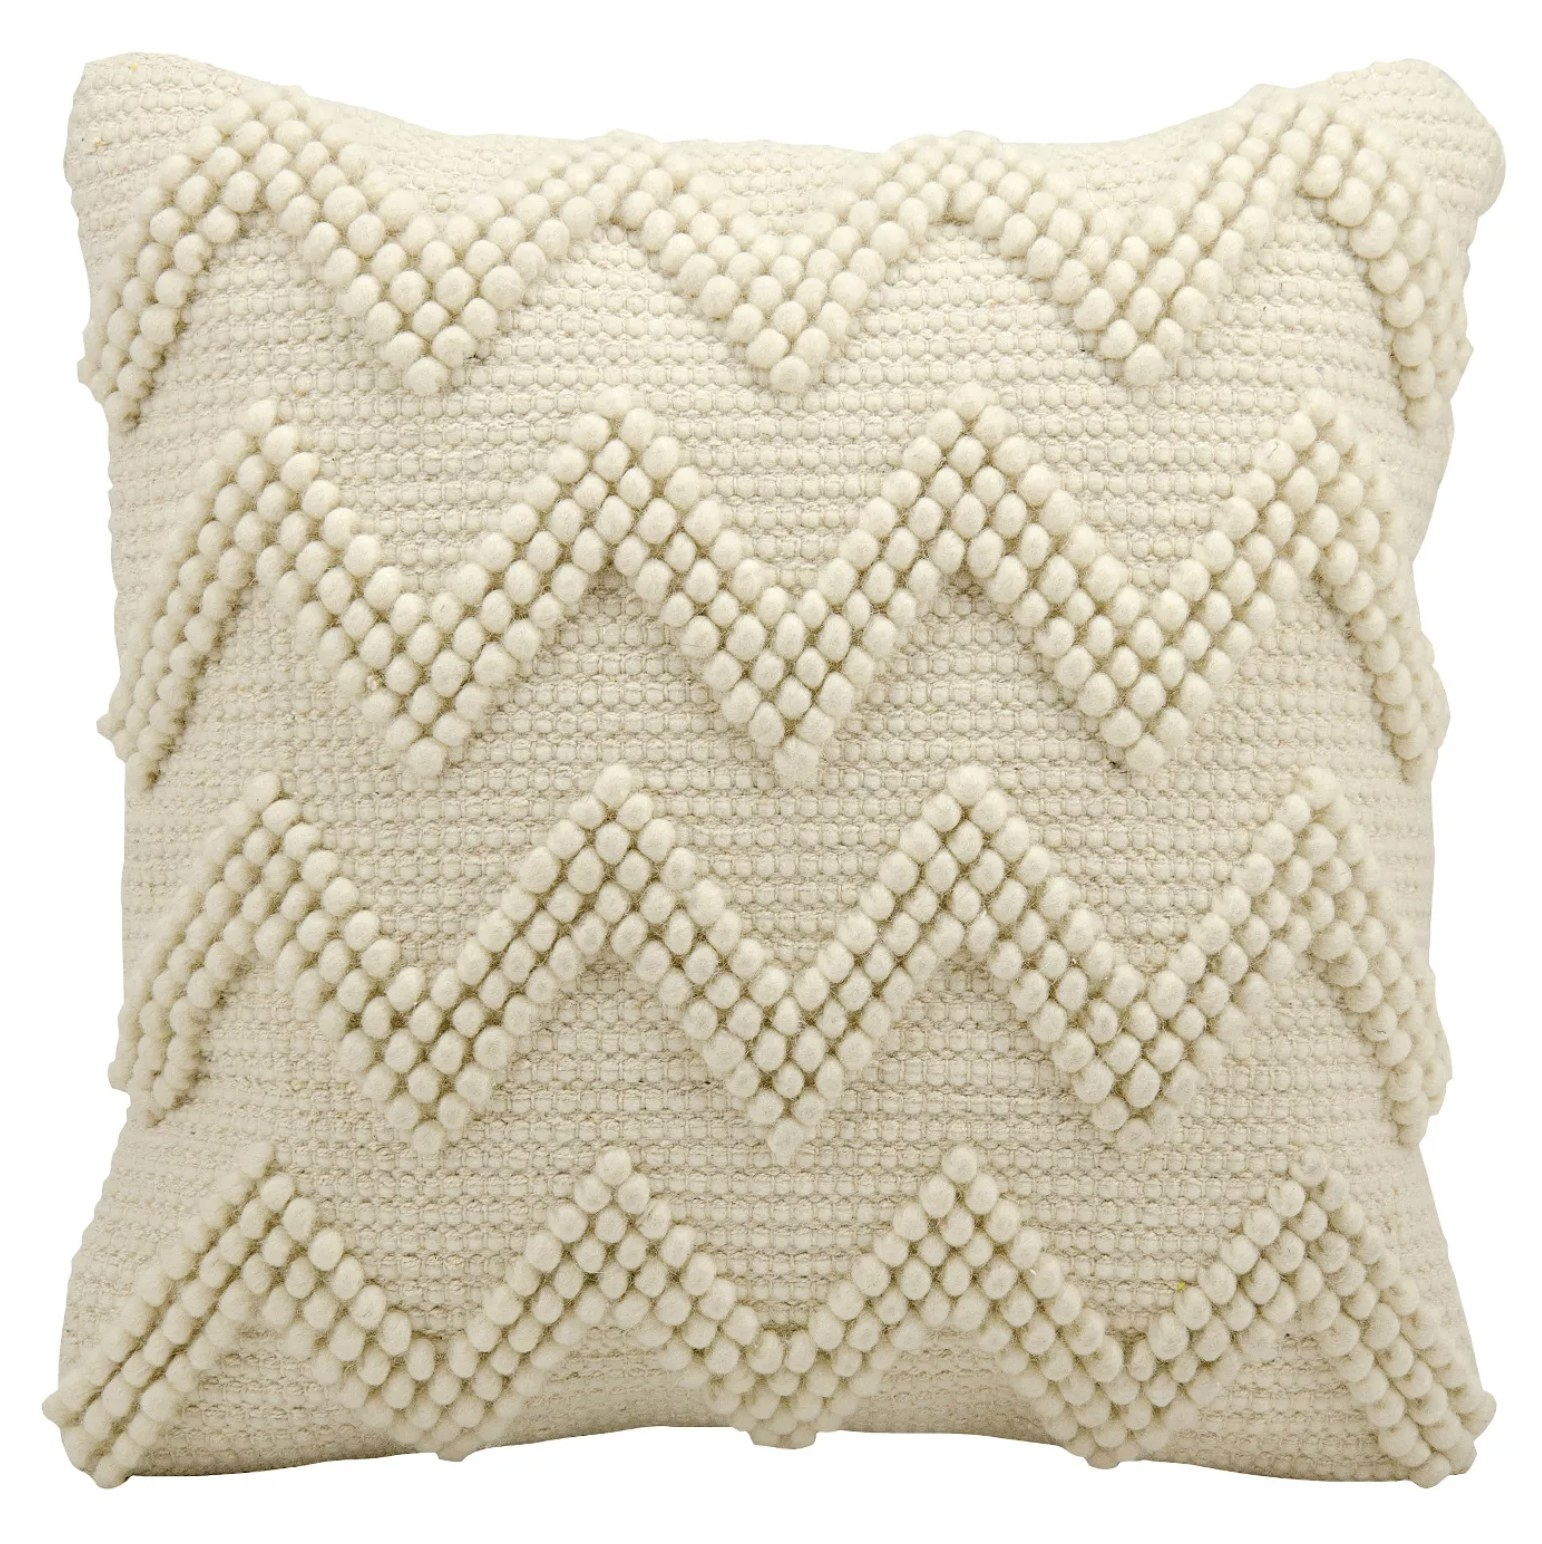 A cream throw pillow with a textured chevron design